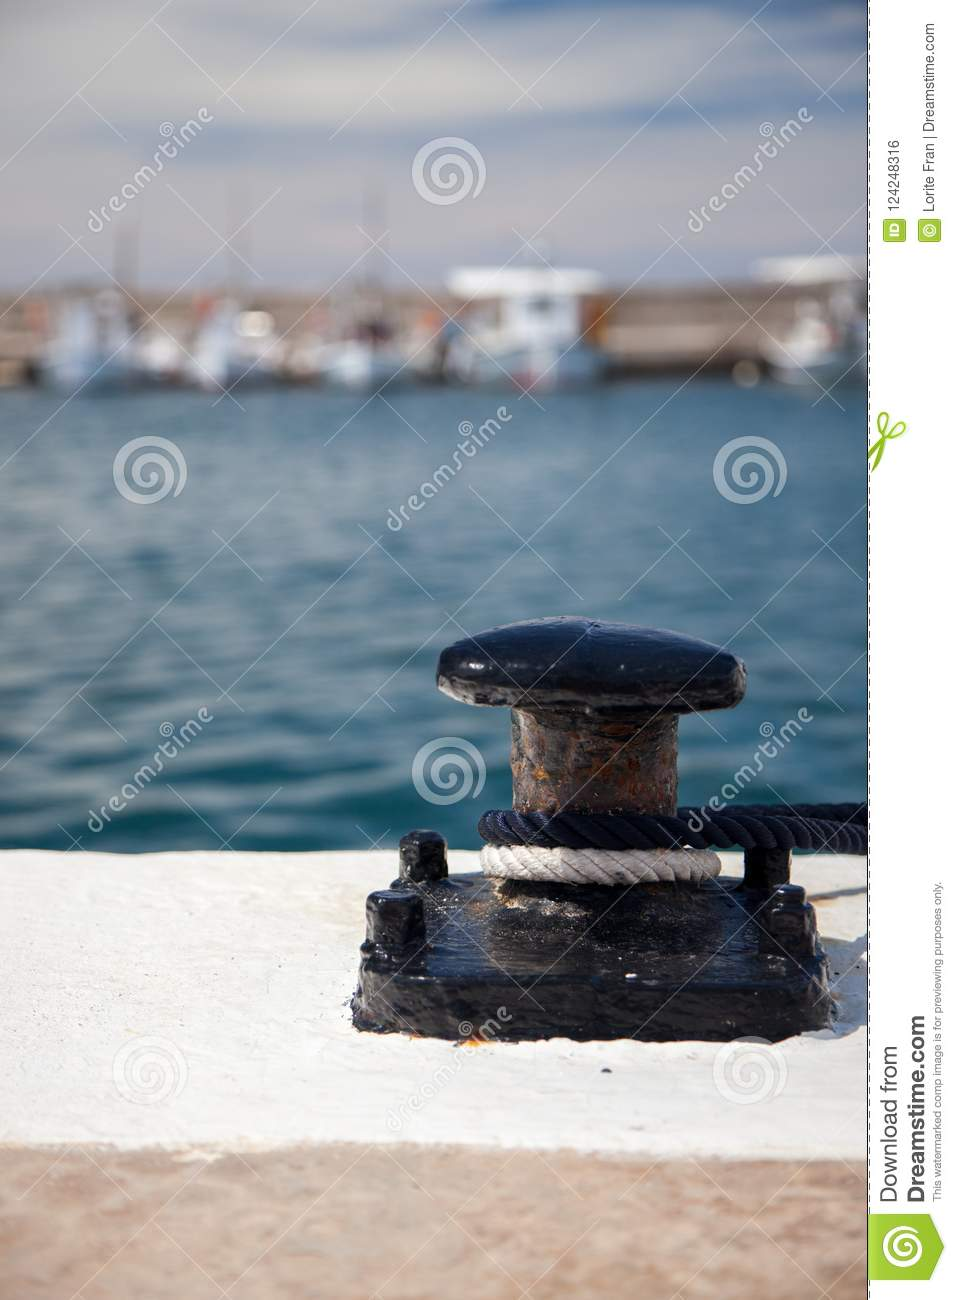 Black bollard with ropes in a marina with small fishing boats in the background